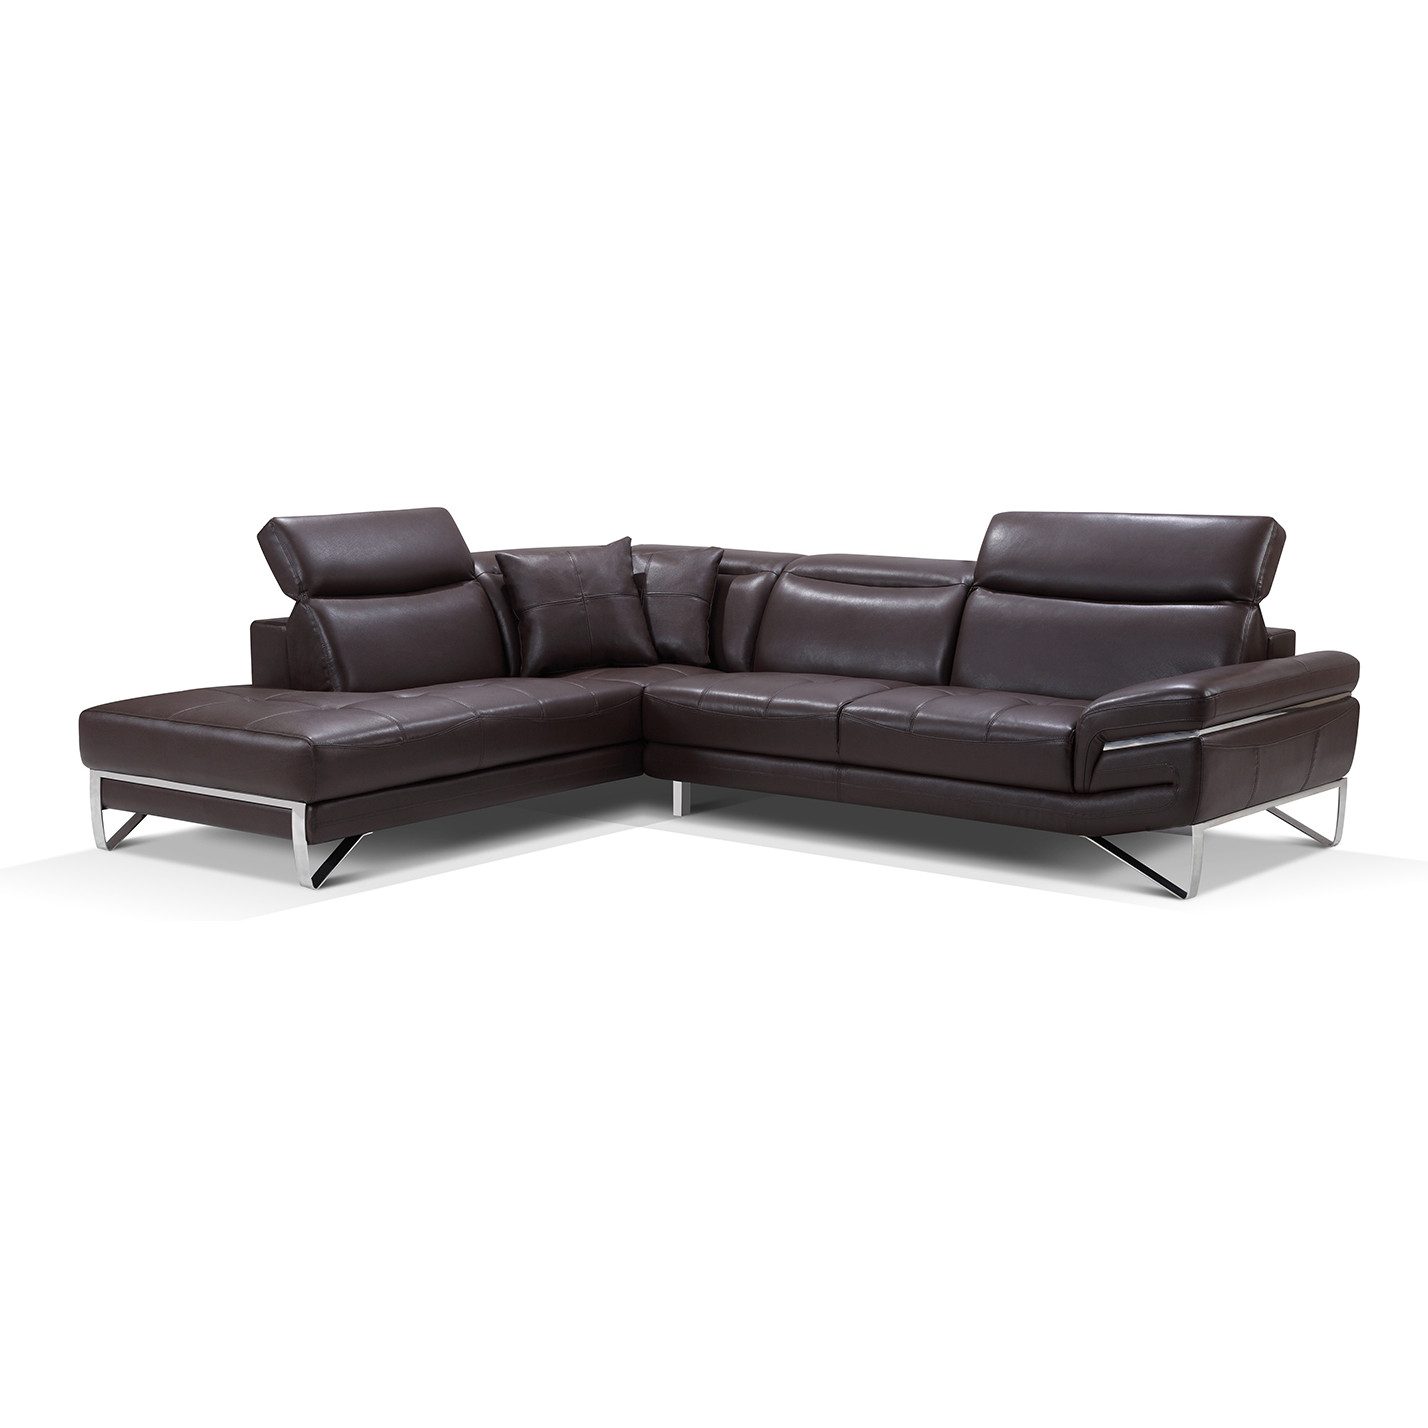 Prime 2194 Sectional Sofa W Left Chaise In Chocolate Leather By Esf Furniture Imports Theyellowbook Wood Chair Design Ideas Theyellowbookinfo